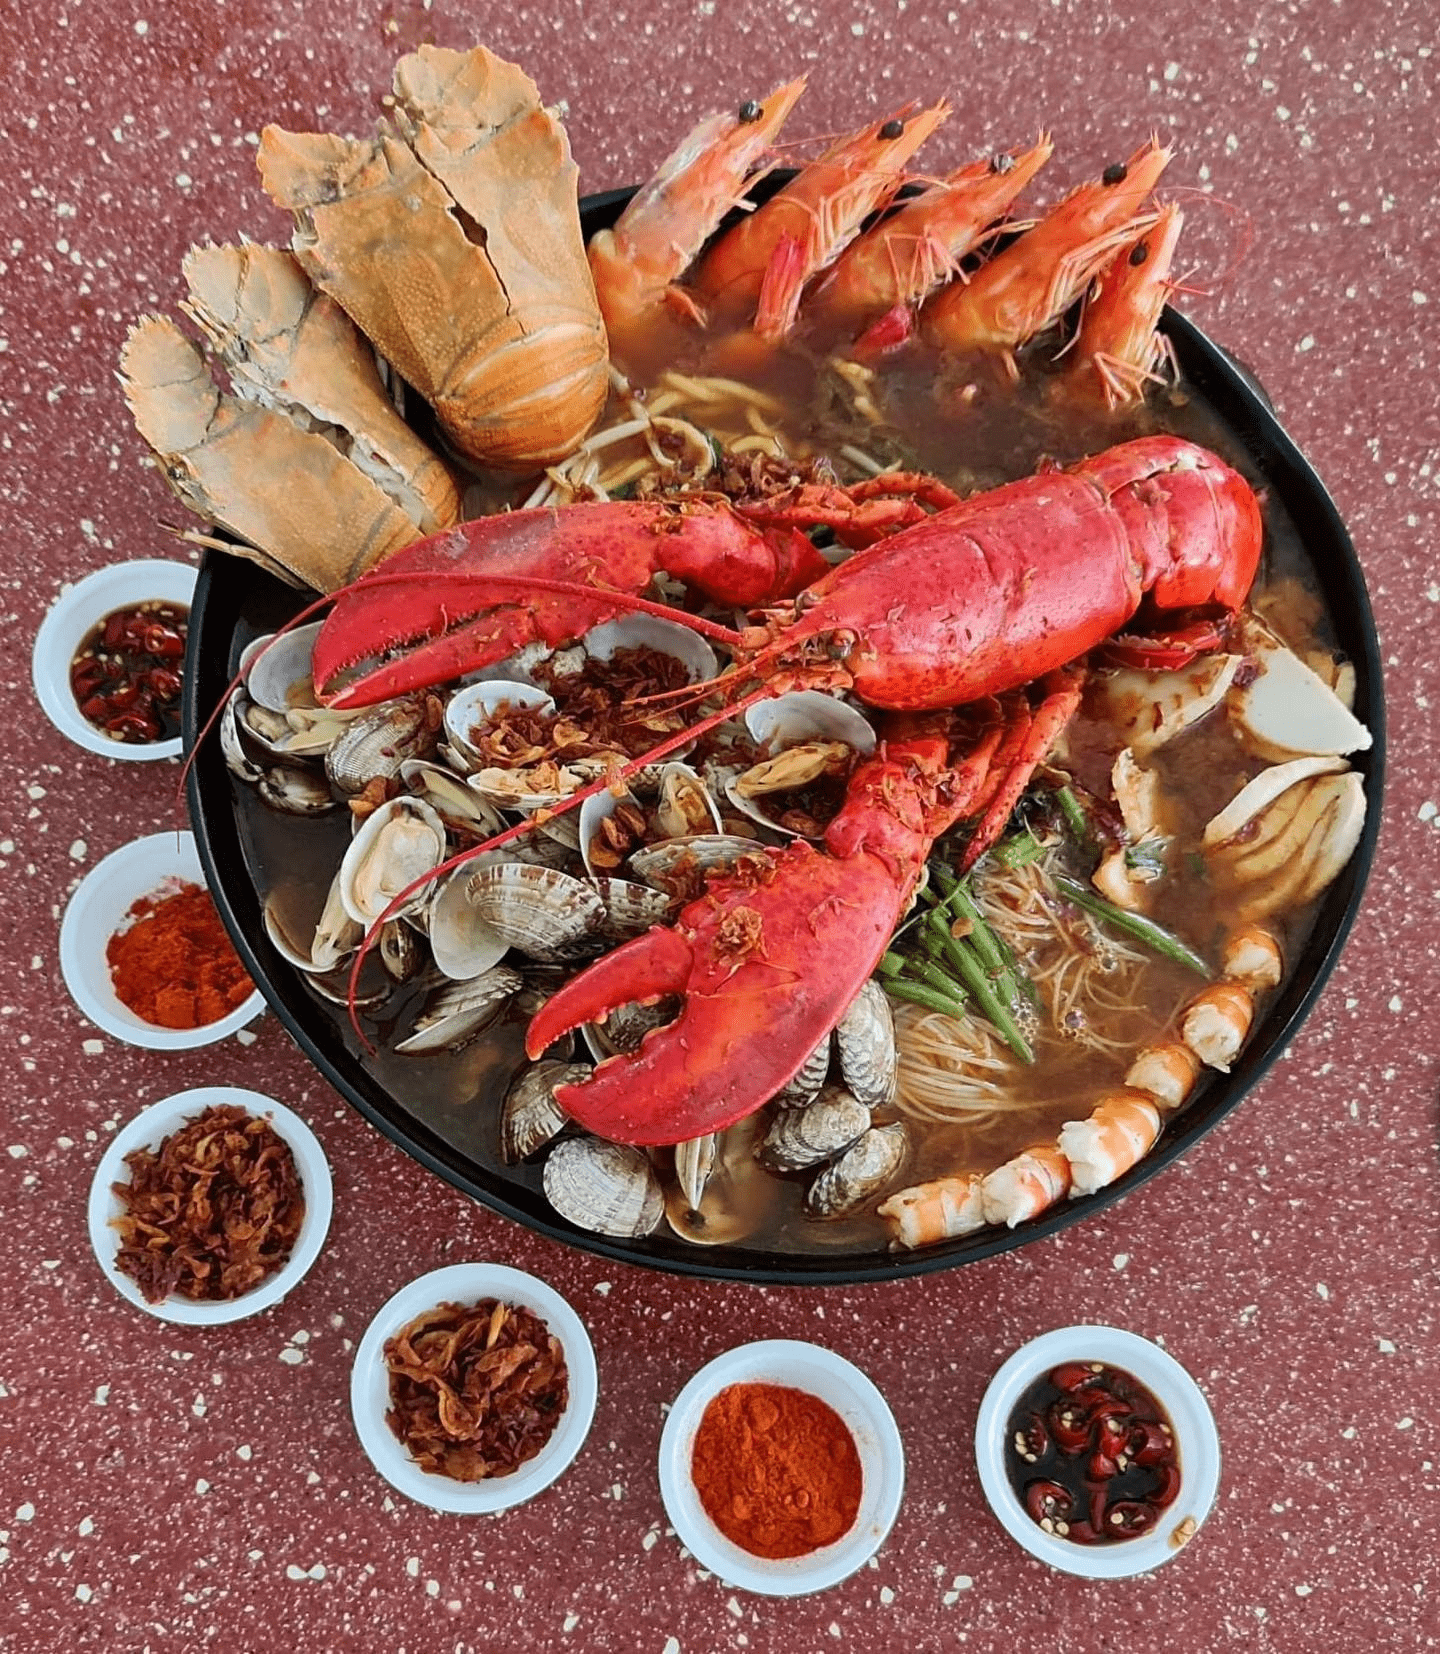 Feast with family on seafood from Deanna's Kitchen